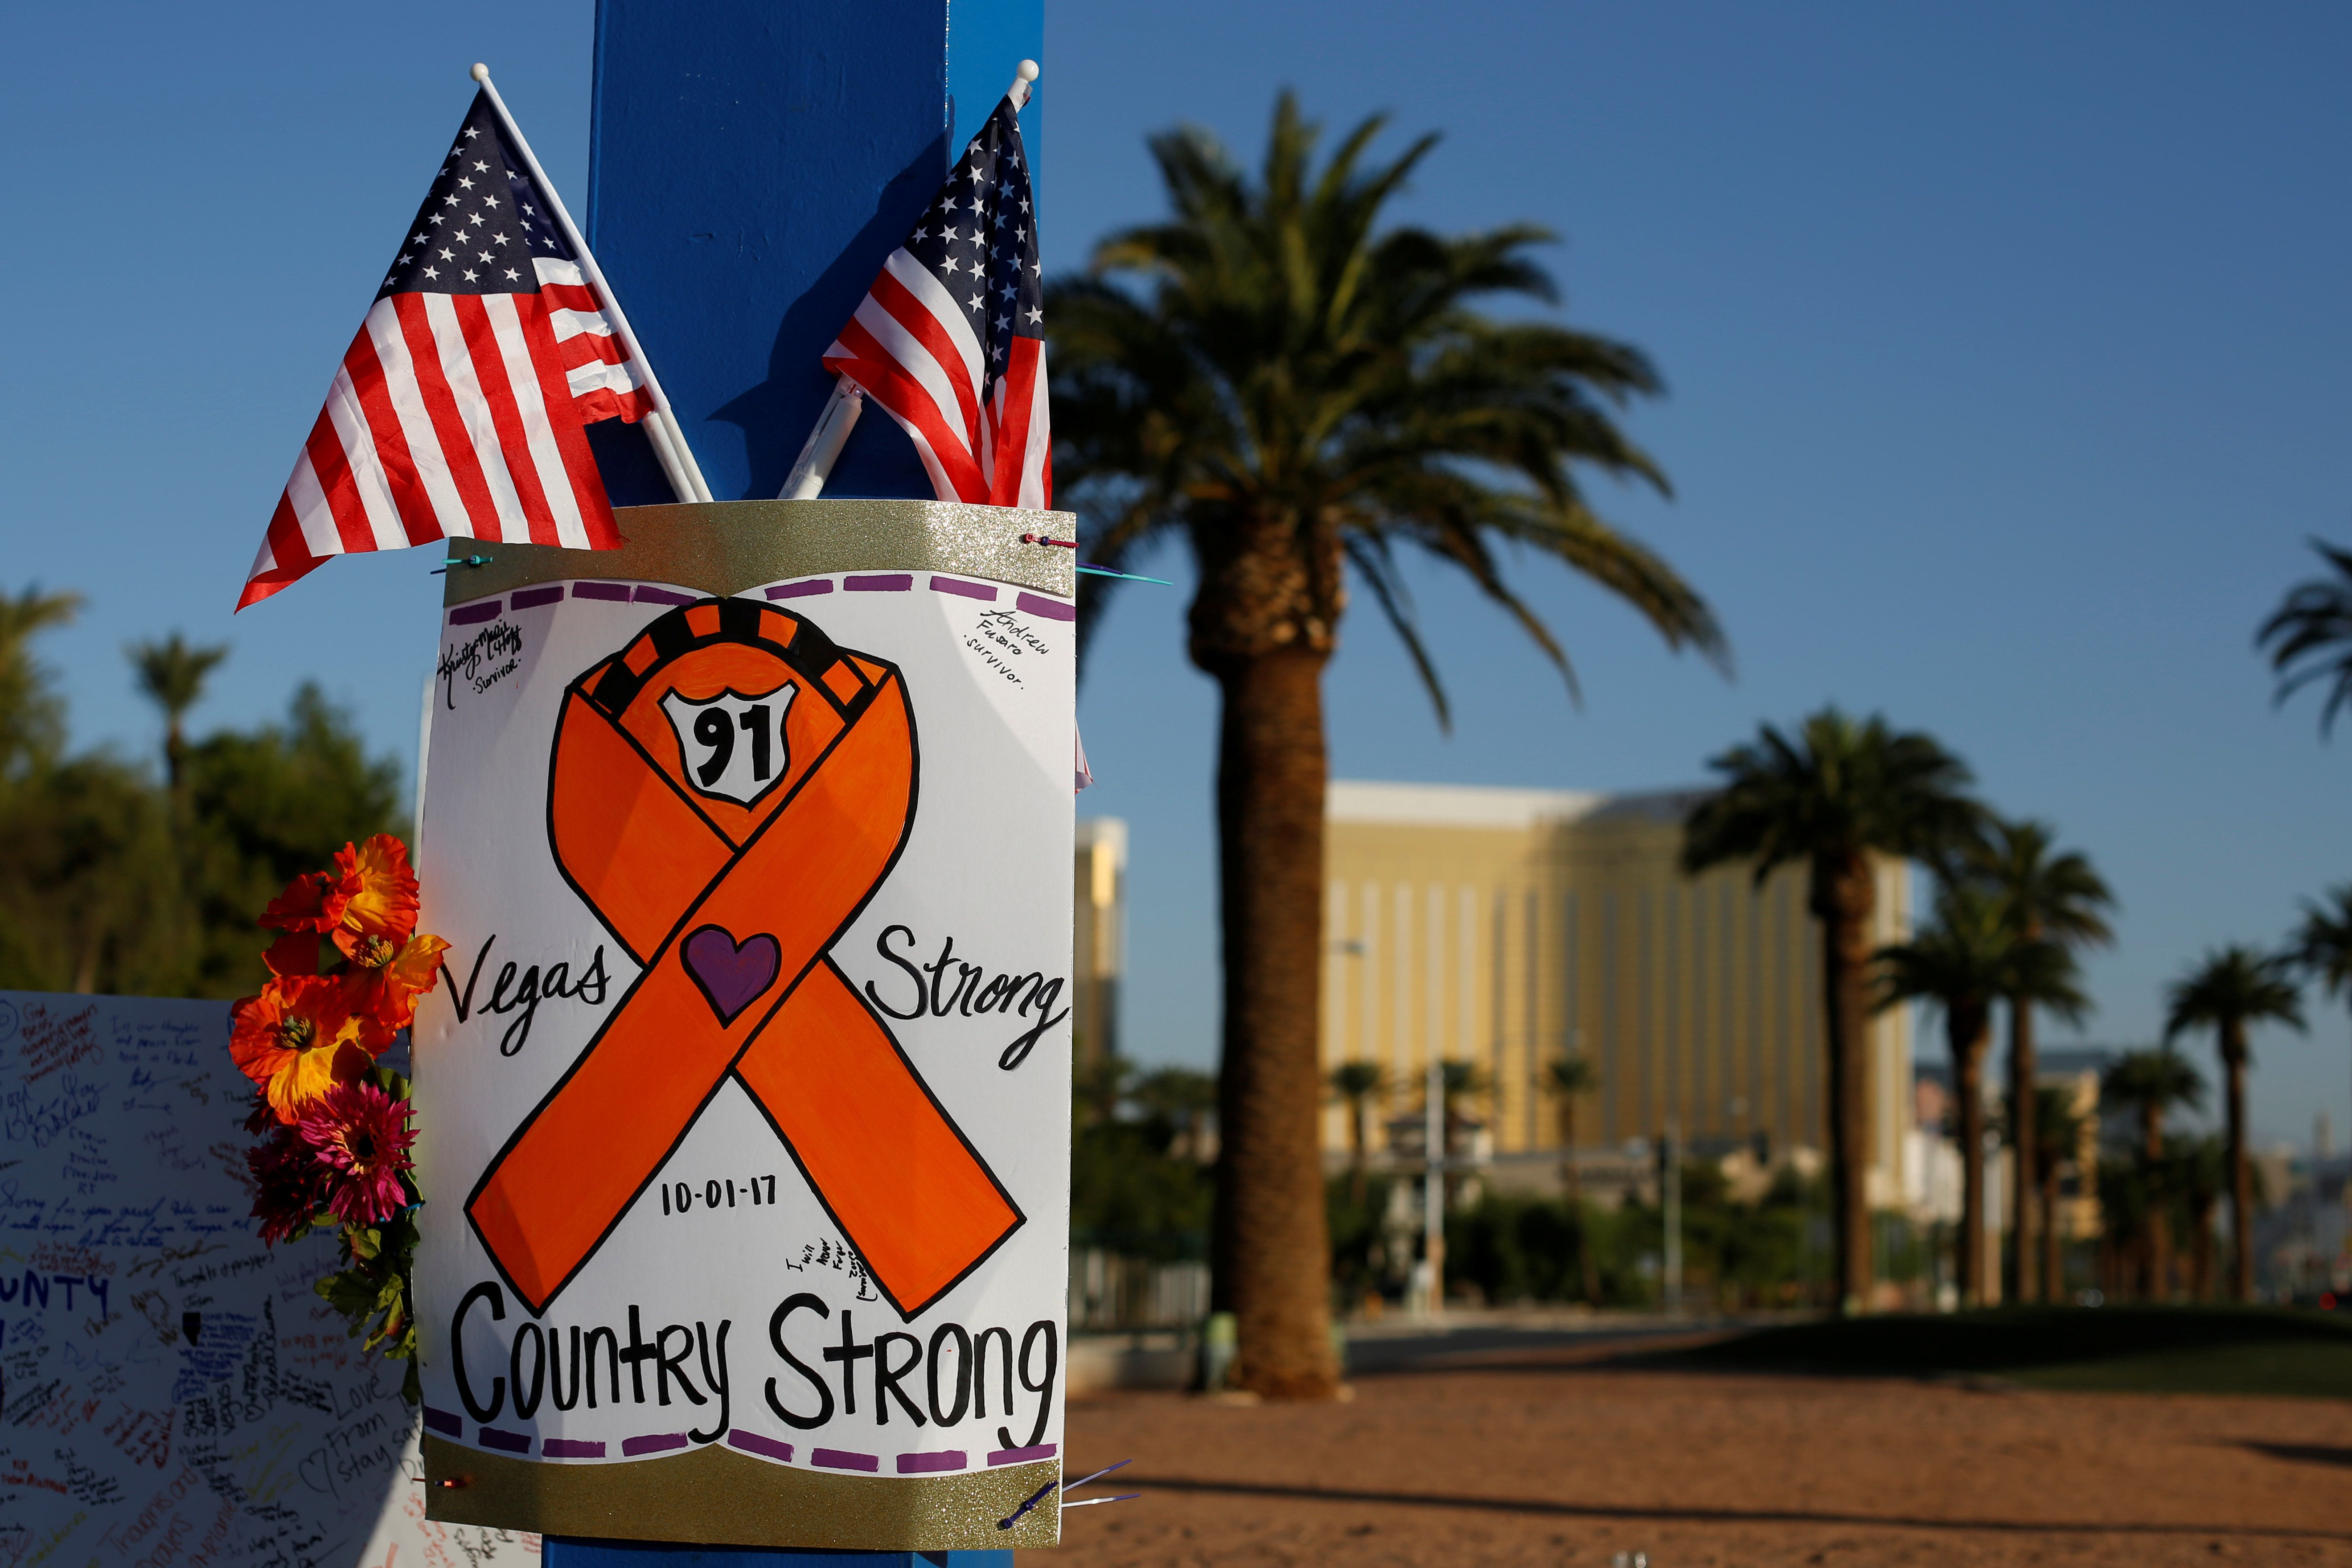 A makeshift memorial sits in the middle of Las Vegas Boulevard after the mass shooting in that city.